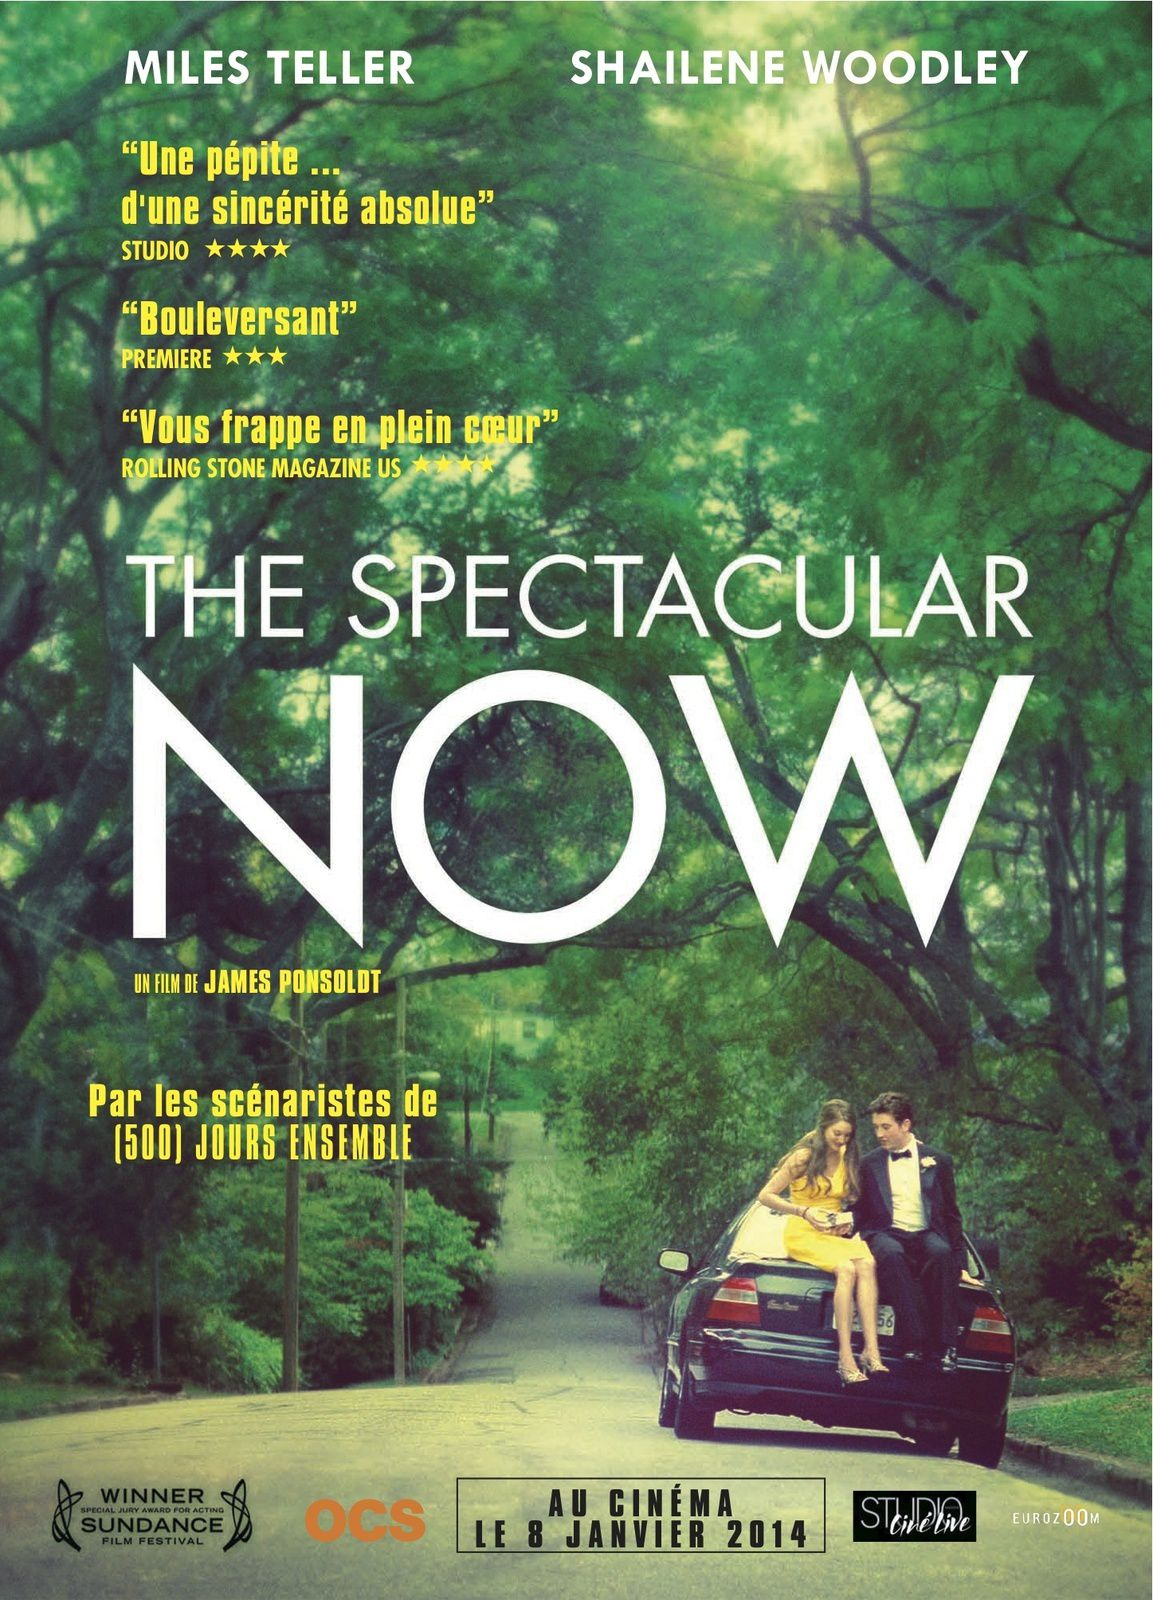 The Spectacular Now (2 EXTRAITS VOST) avec Shailene Woodley, Miles Teller, Jennifer Jason Leigh - 08 01 2014